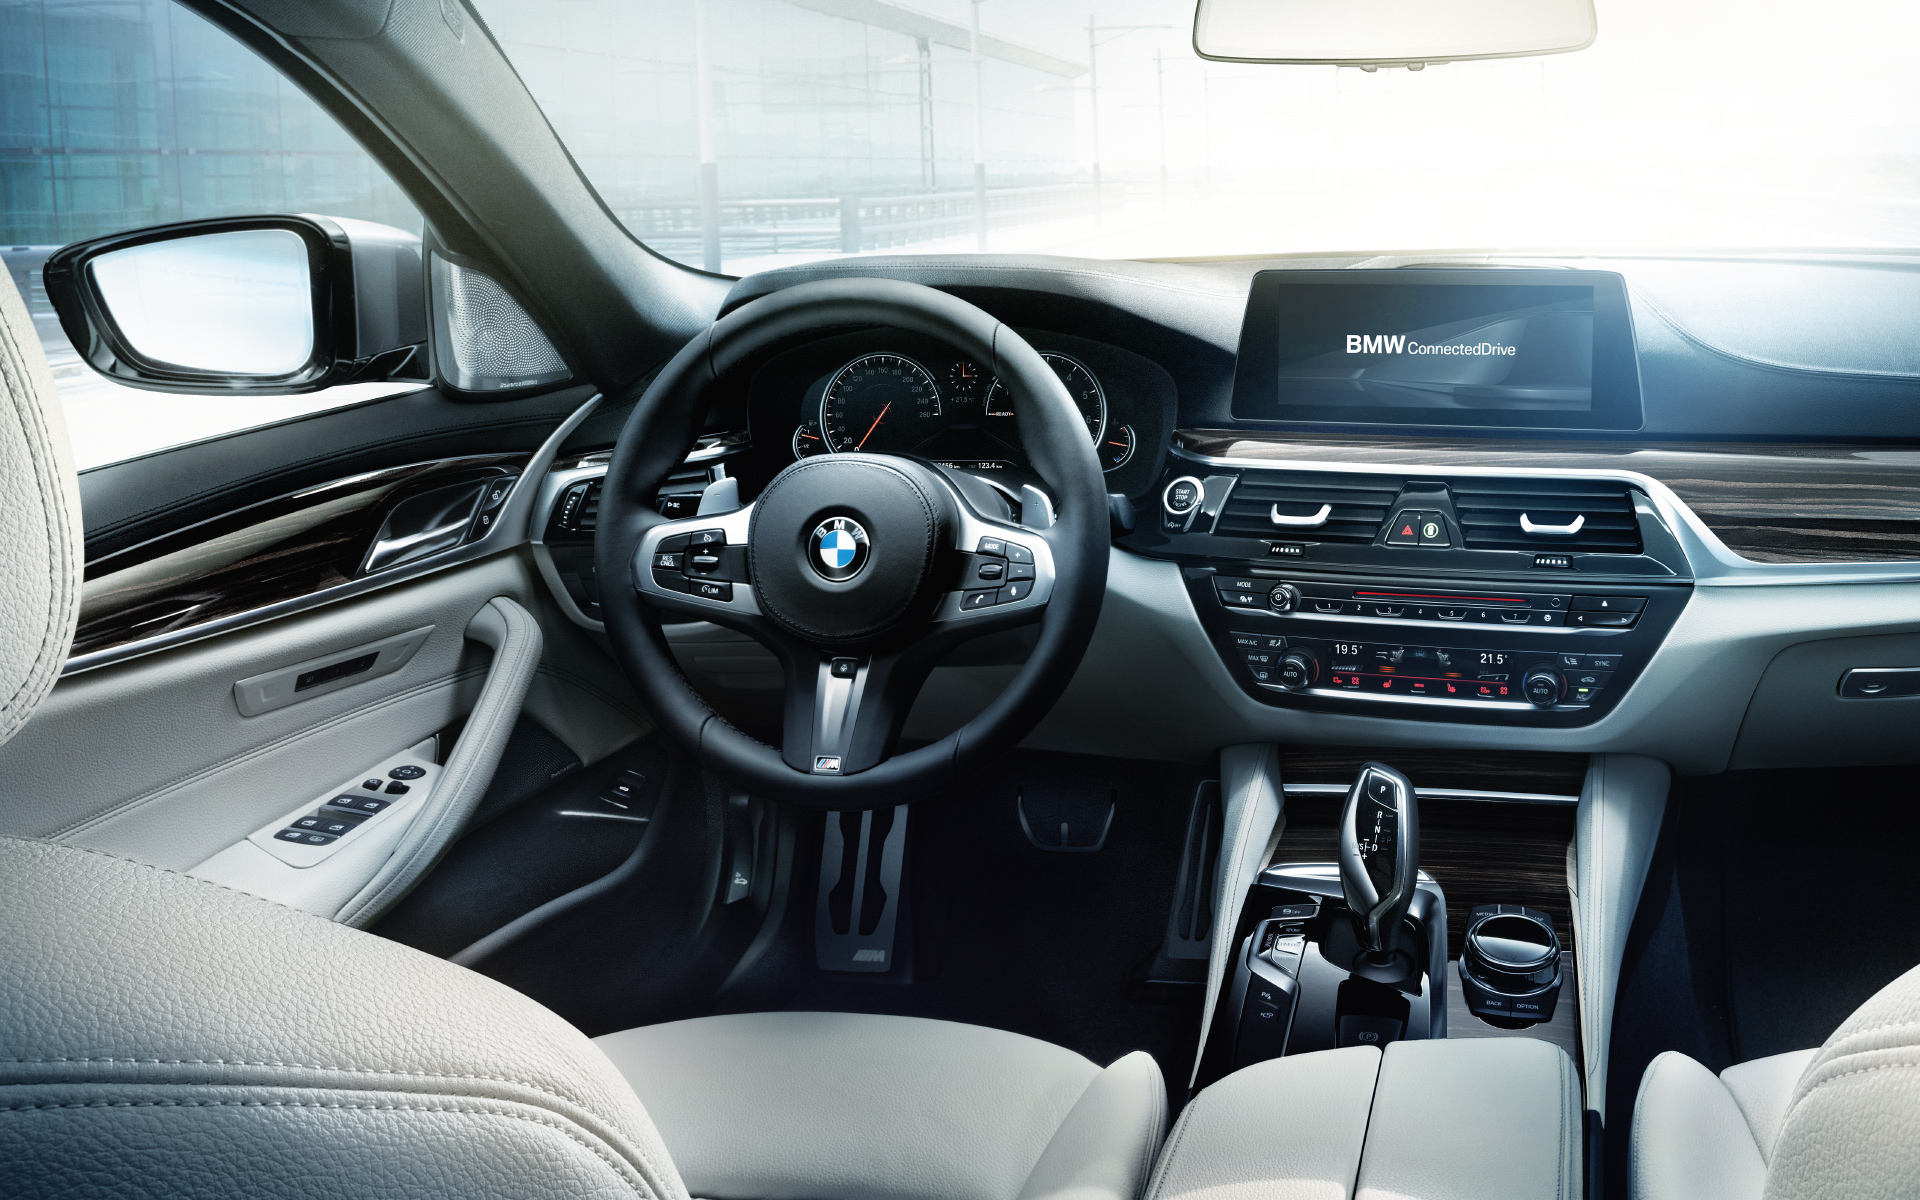 G30 BMW 5 Series Wallpapers | BMWCoop